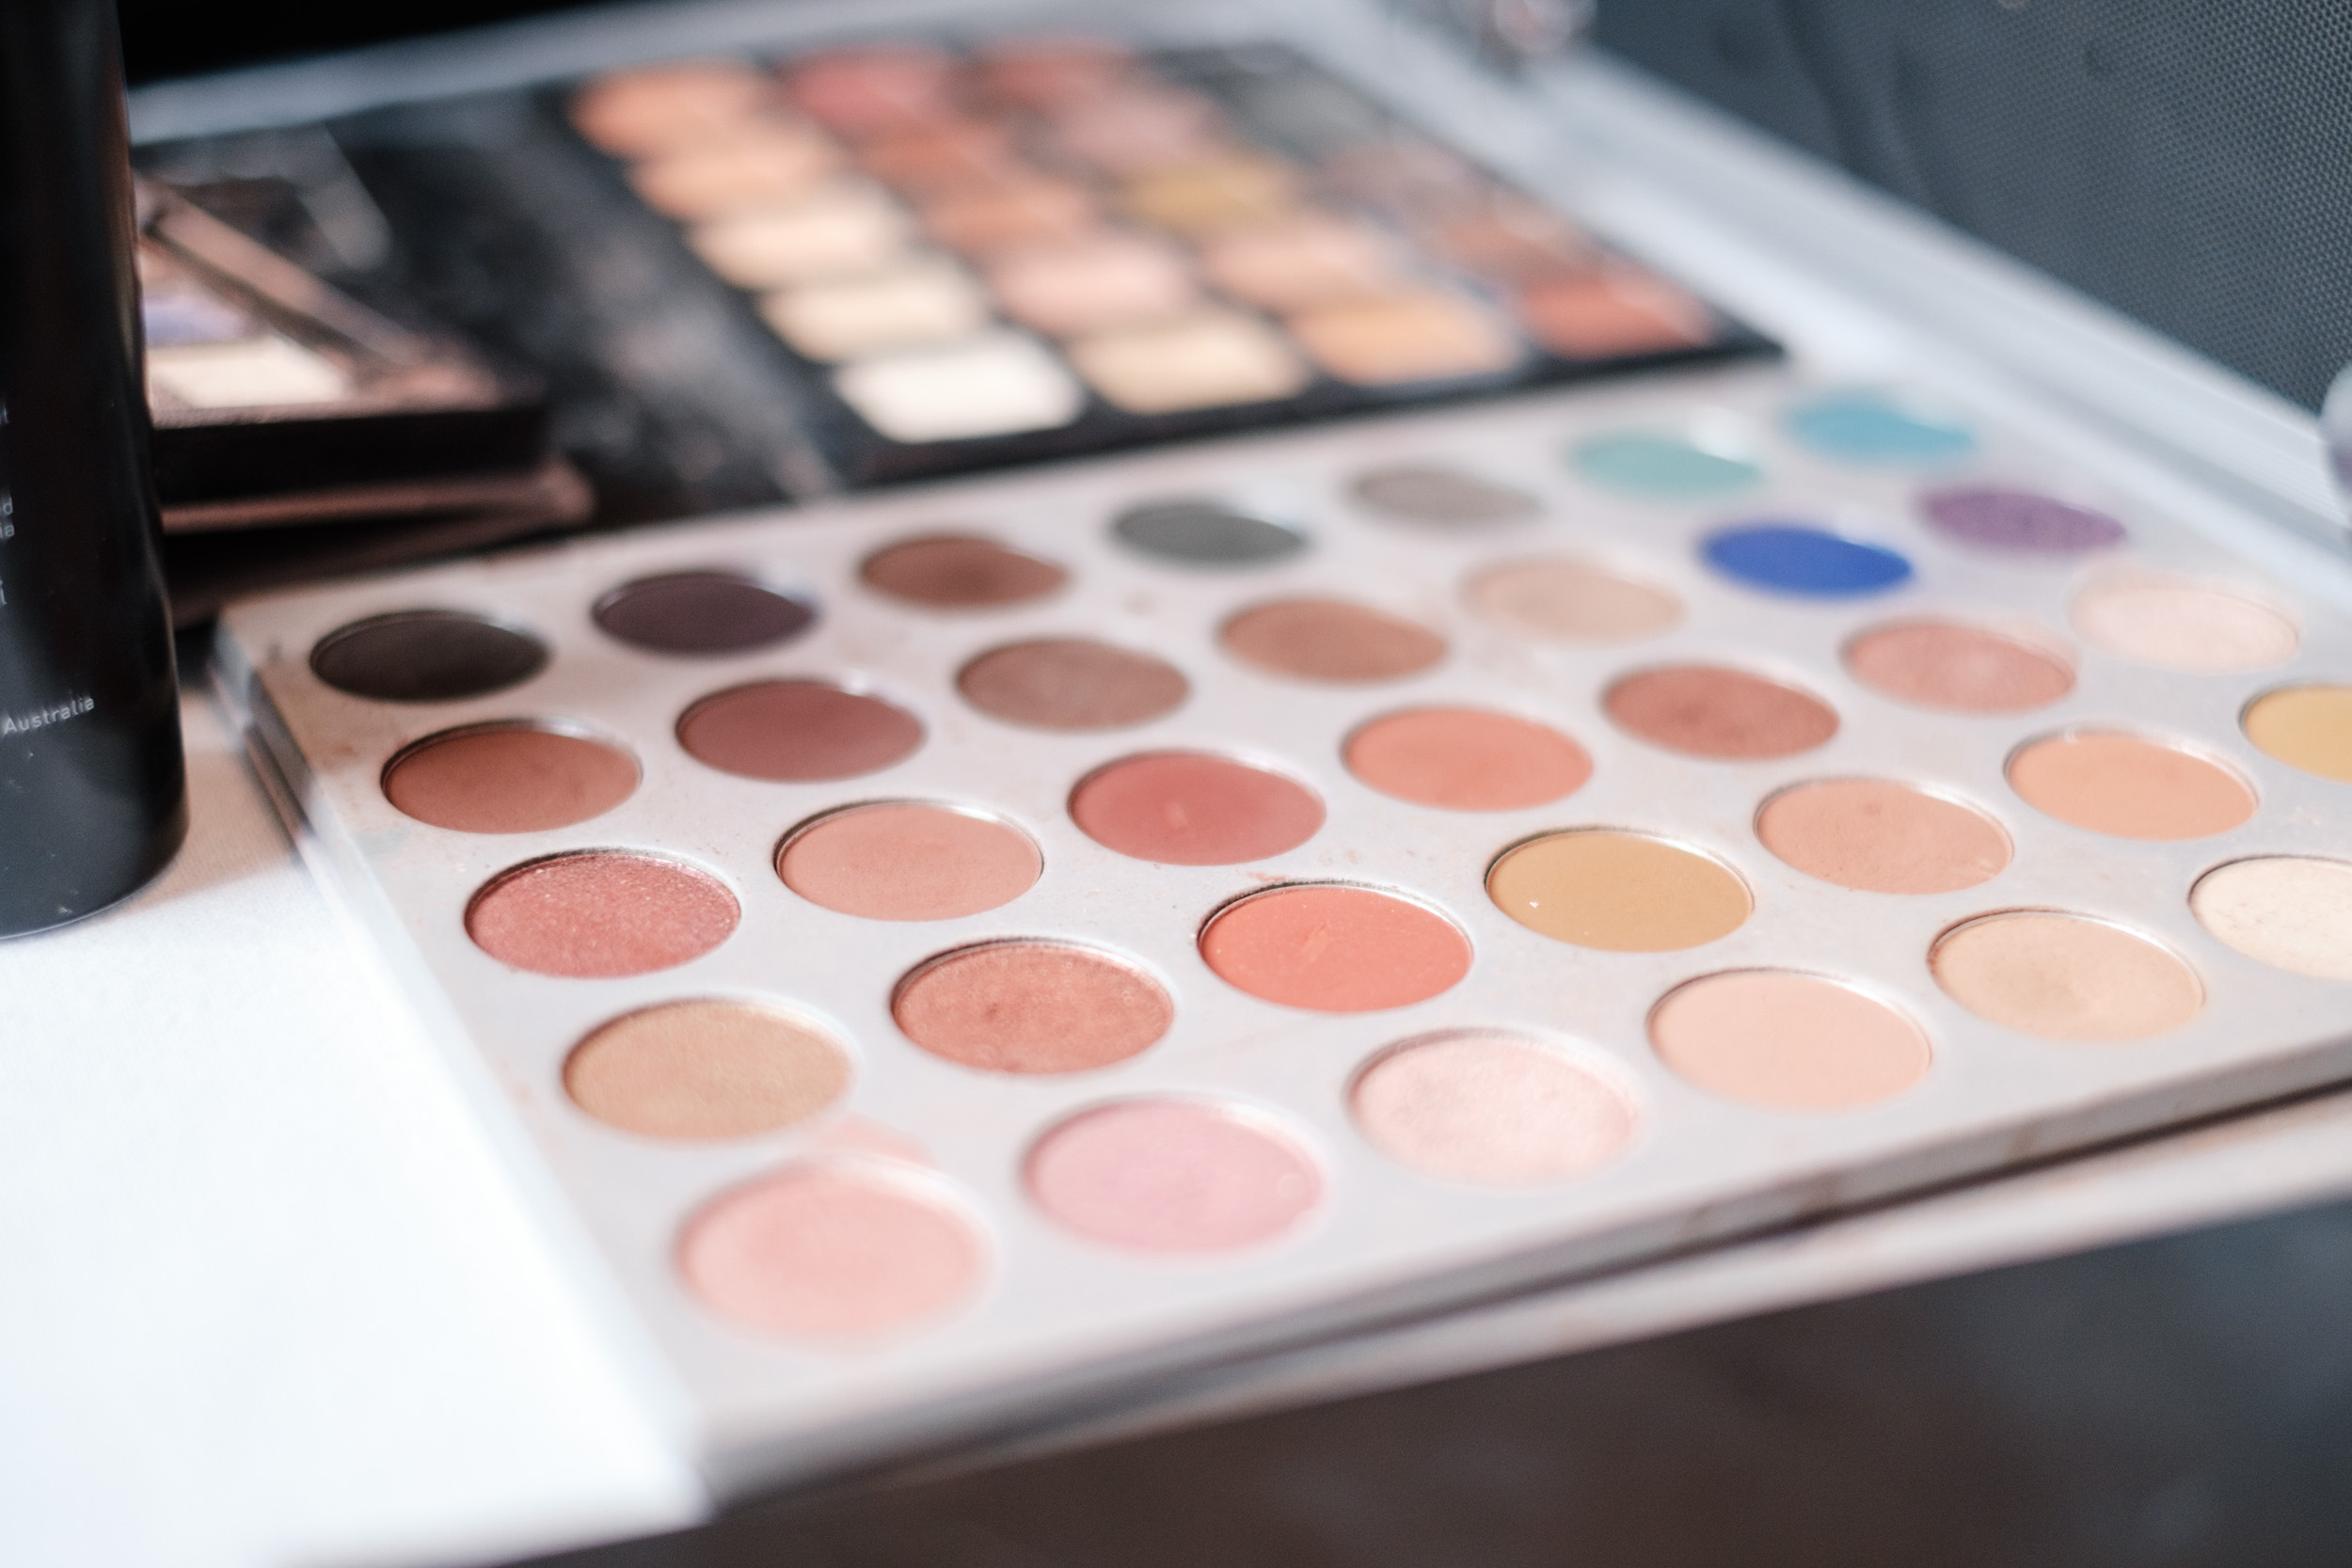 wedding photography of makeup palette while bride gets ready